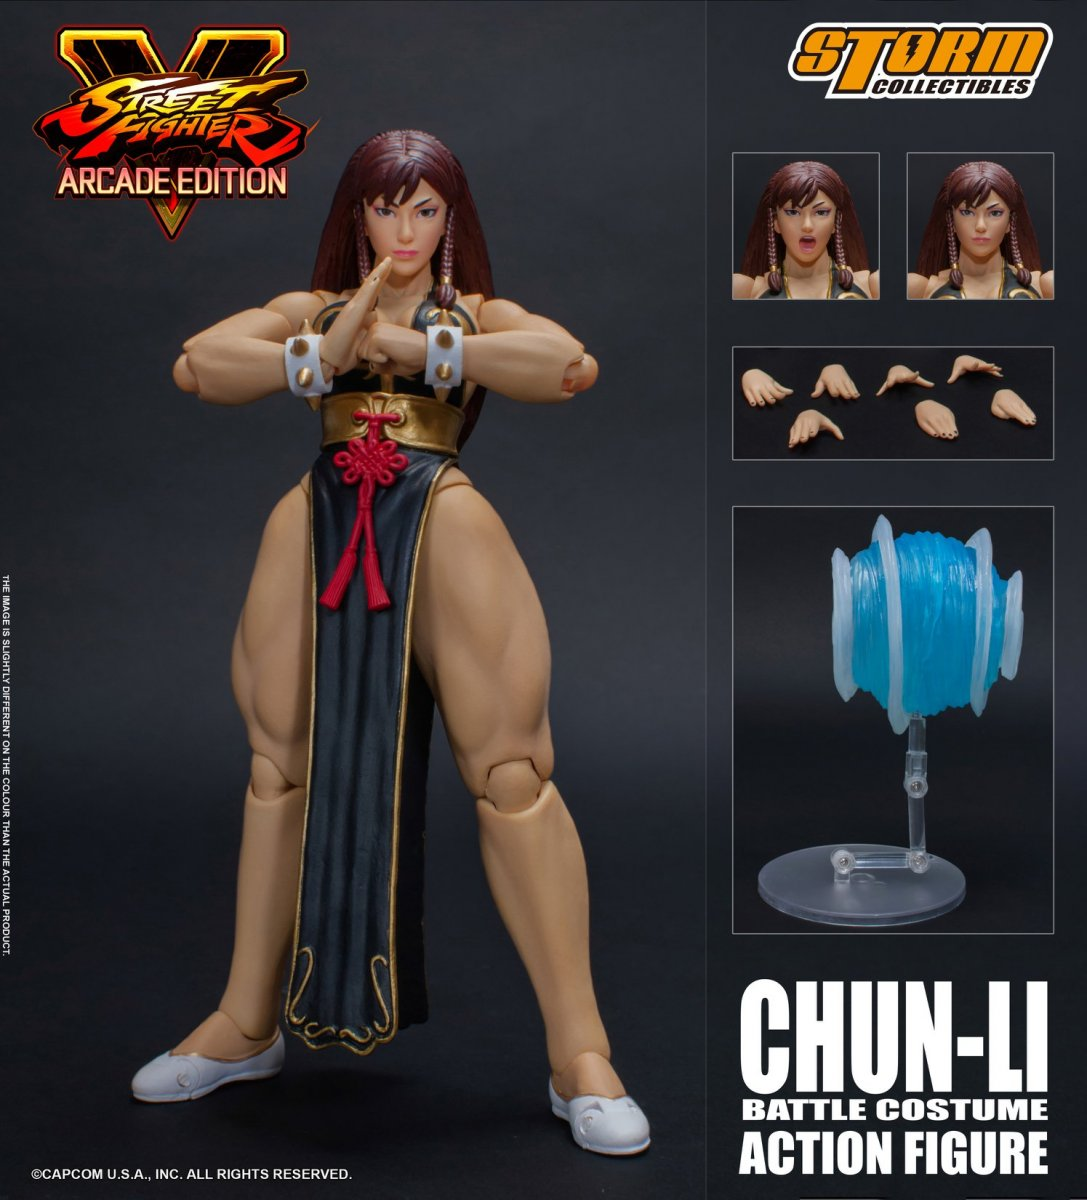 Street Fighter V - Hot Chun-Li 2018 NYCC Exclusive 1:12 Action Figure